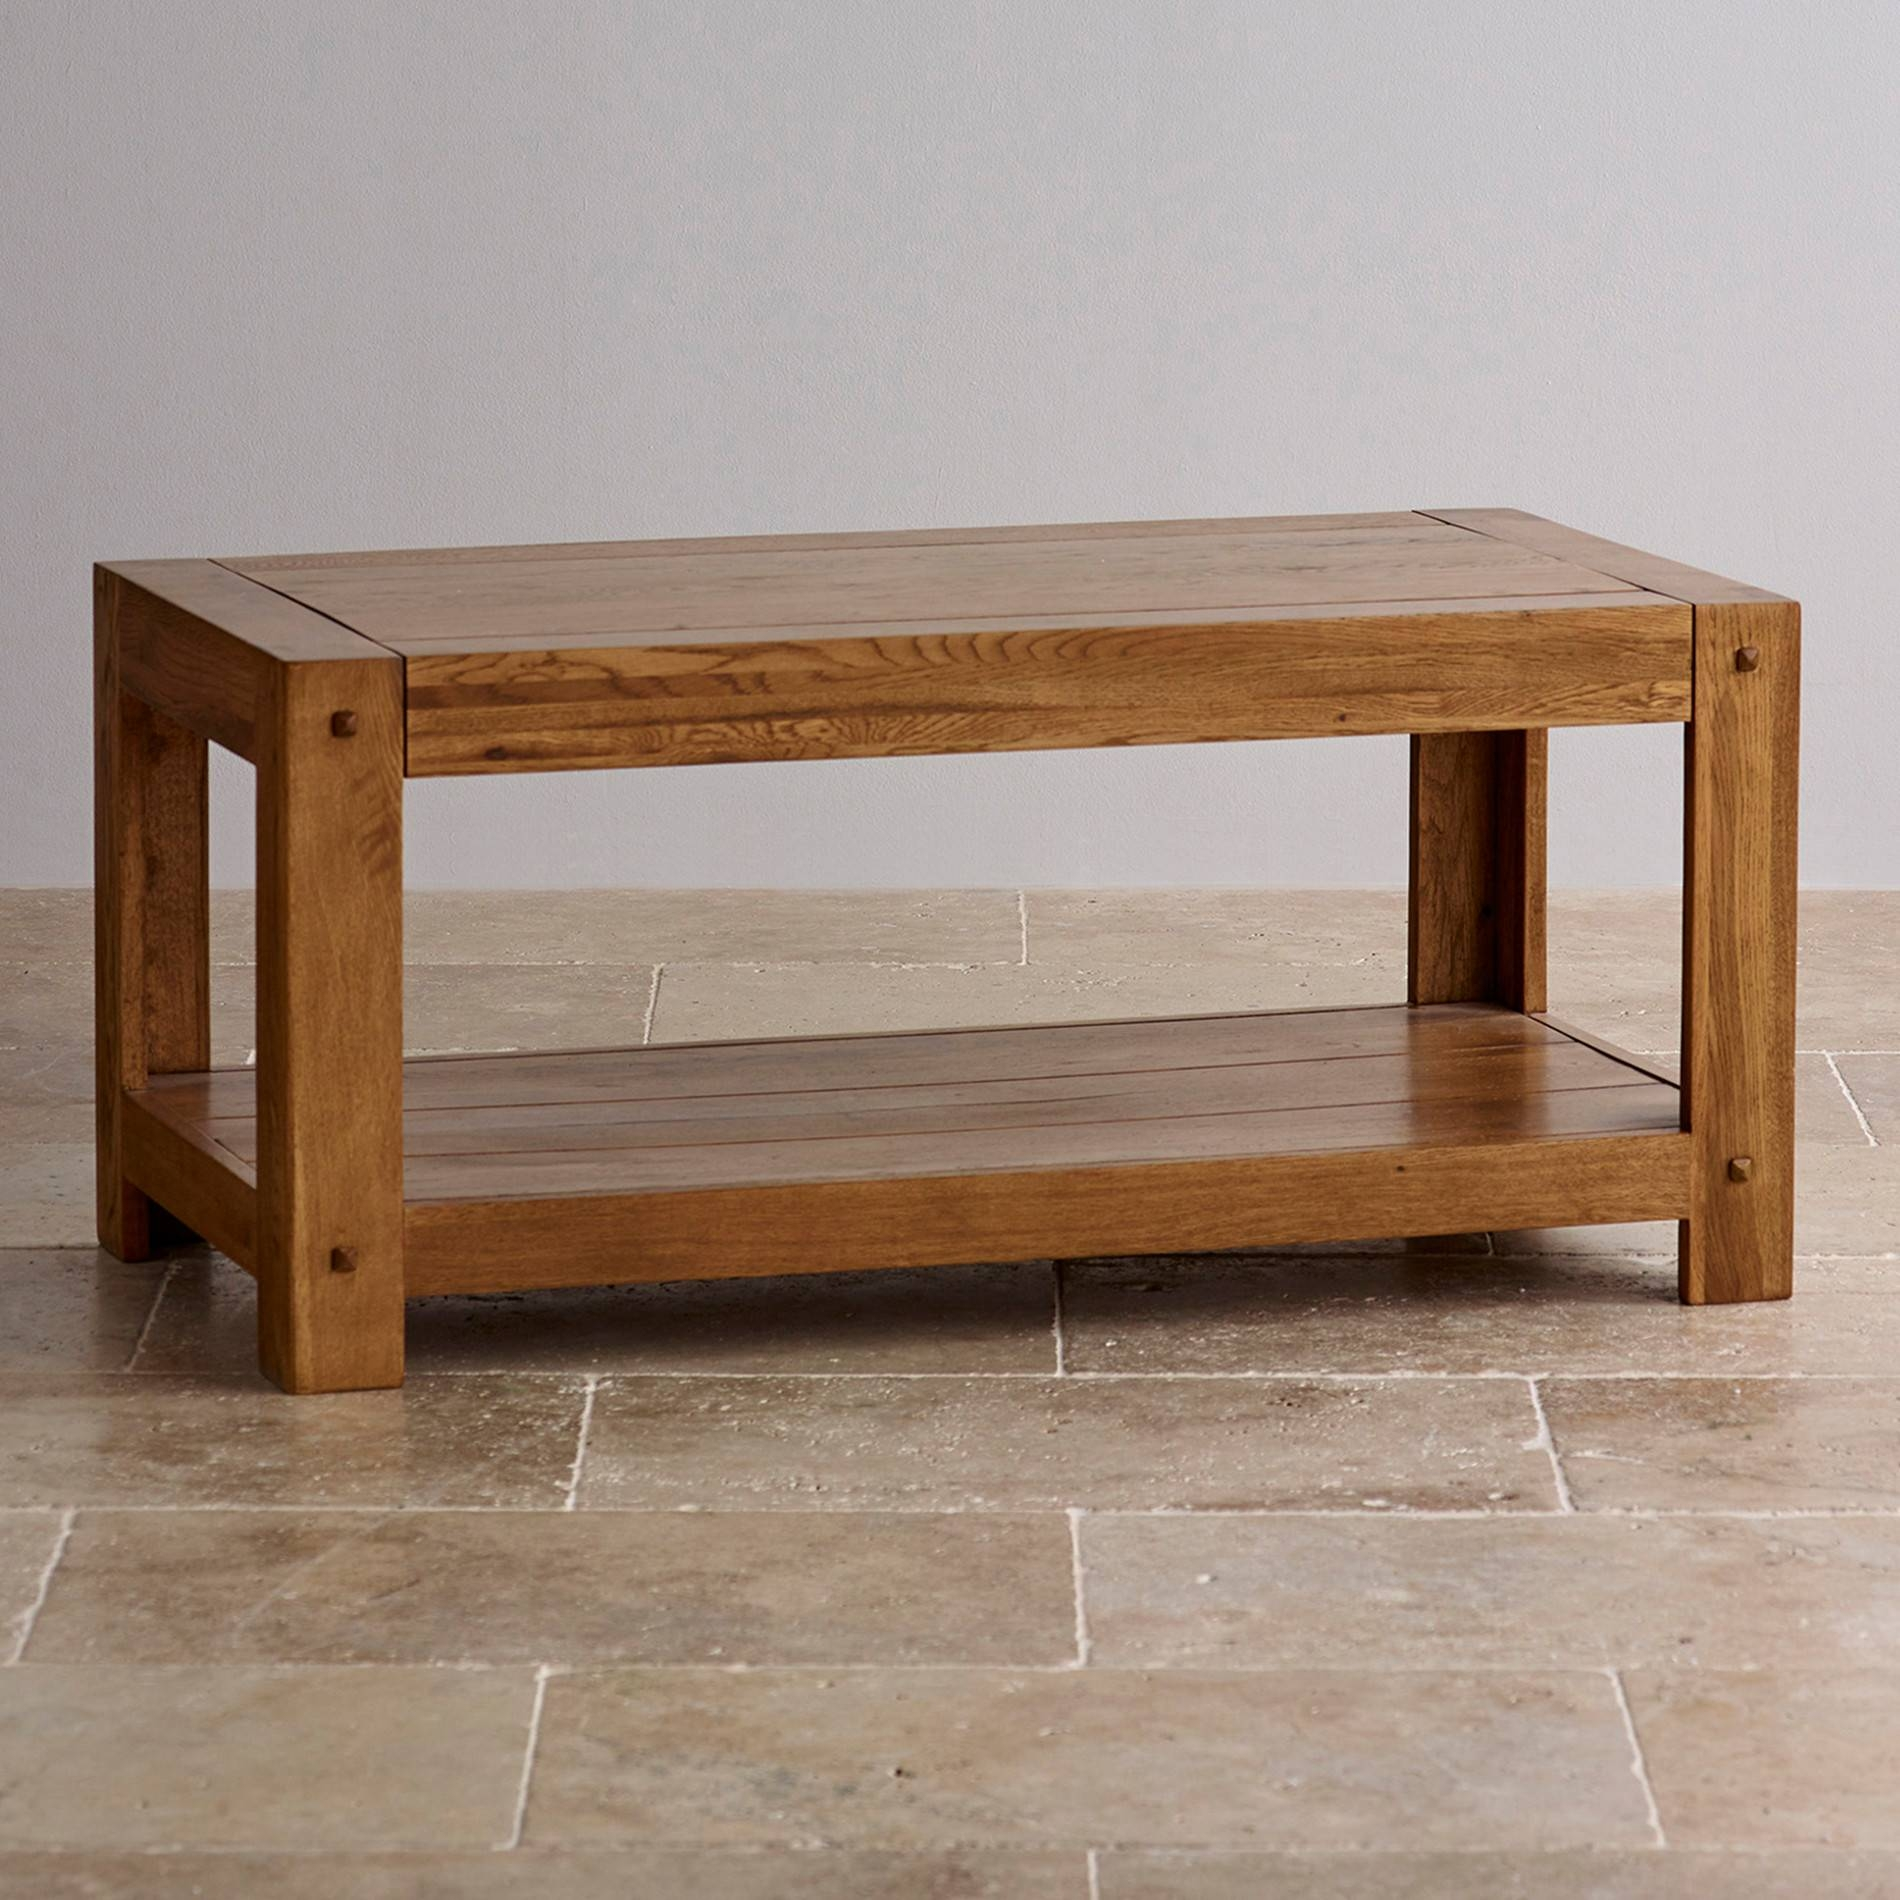 Quercus Coffee Table In Rustic Solid Oak | Oak Furniture Land Within Oak Wood Coffee Tables (View 3 of 15)